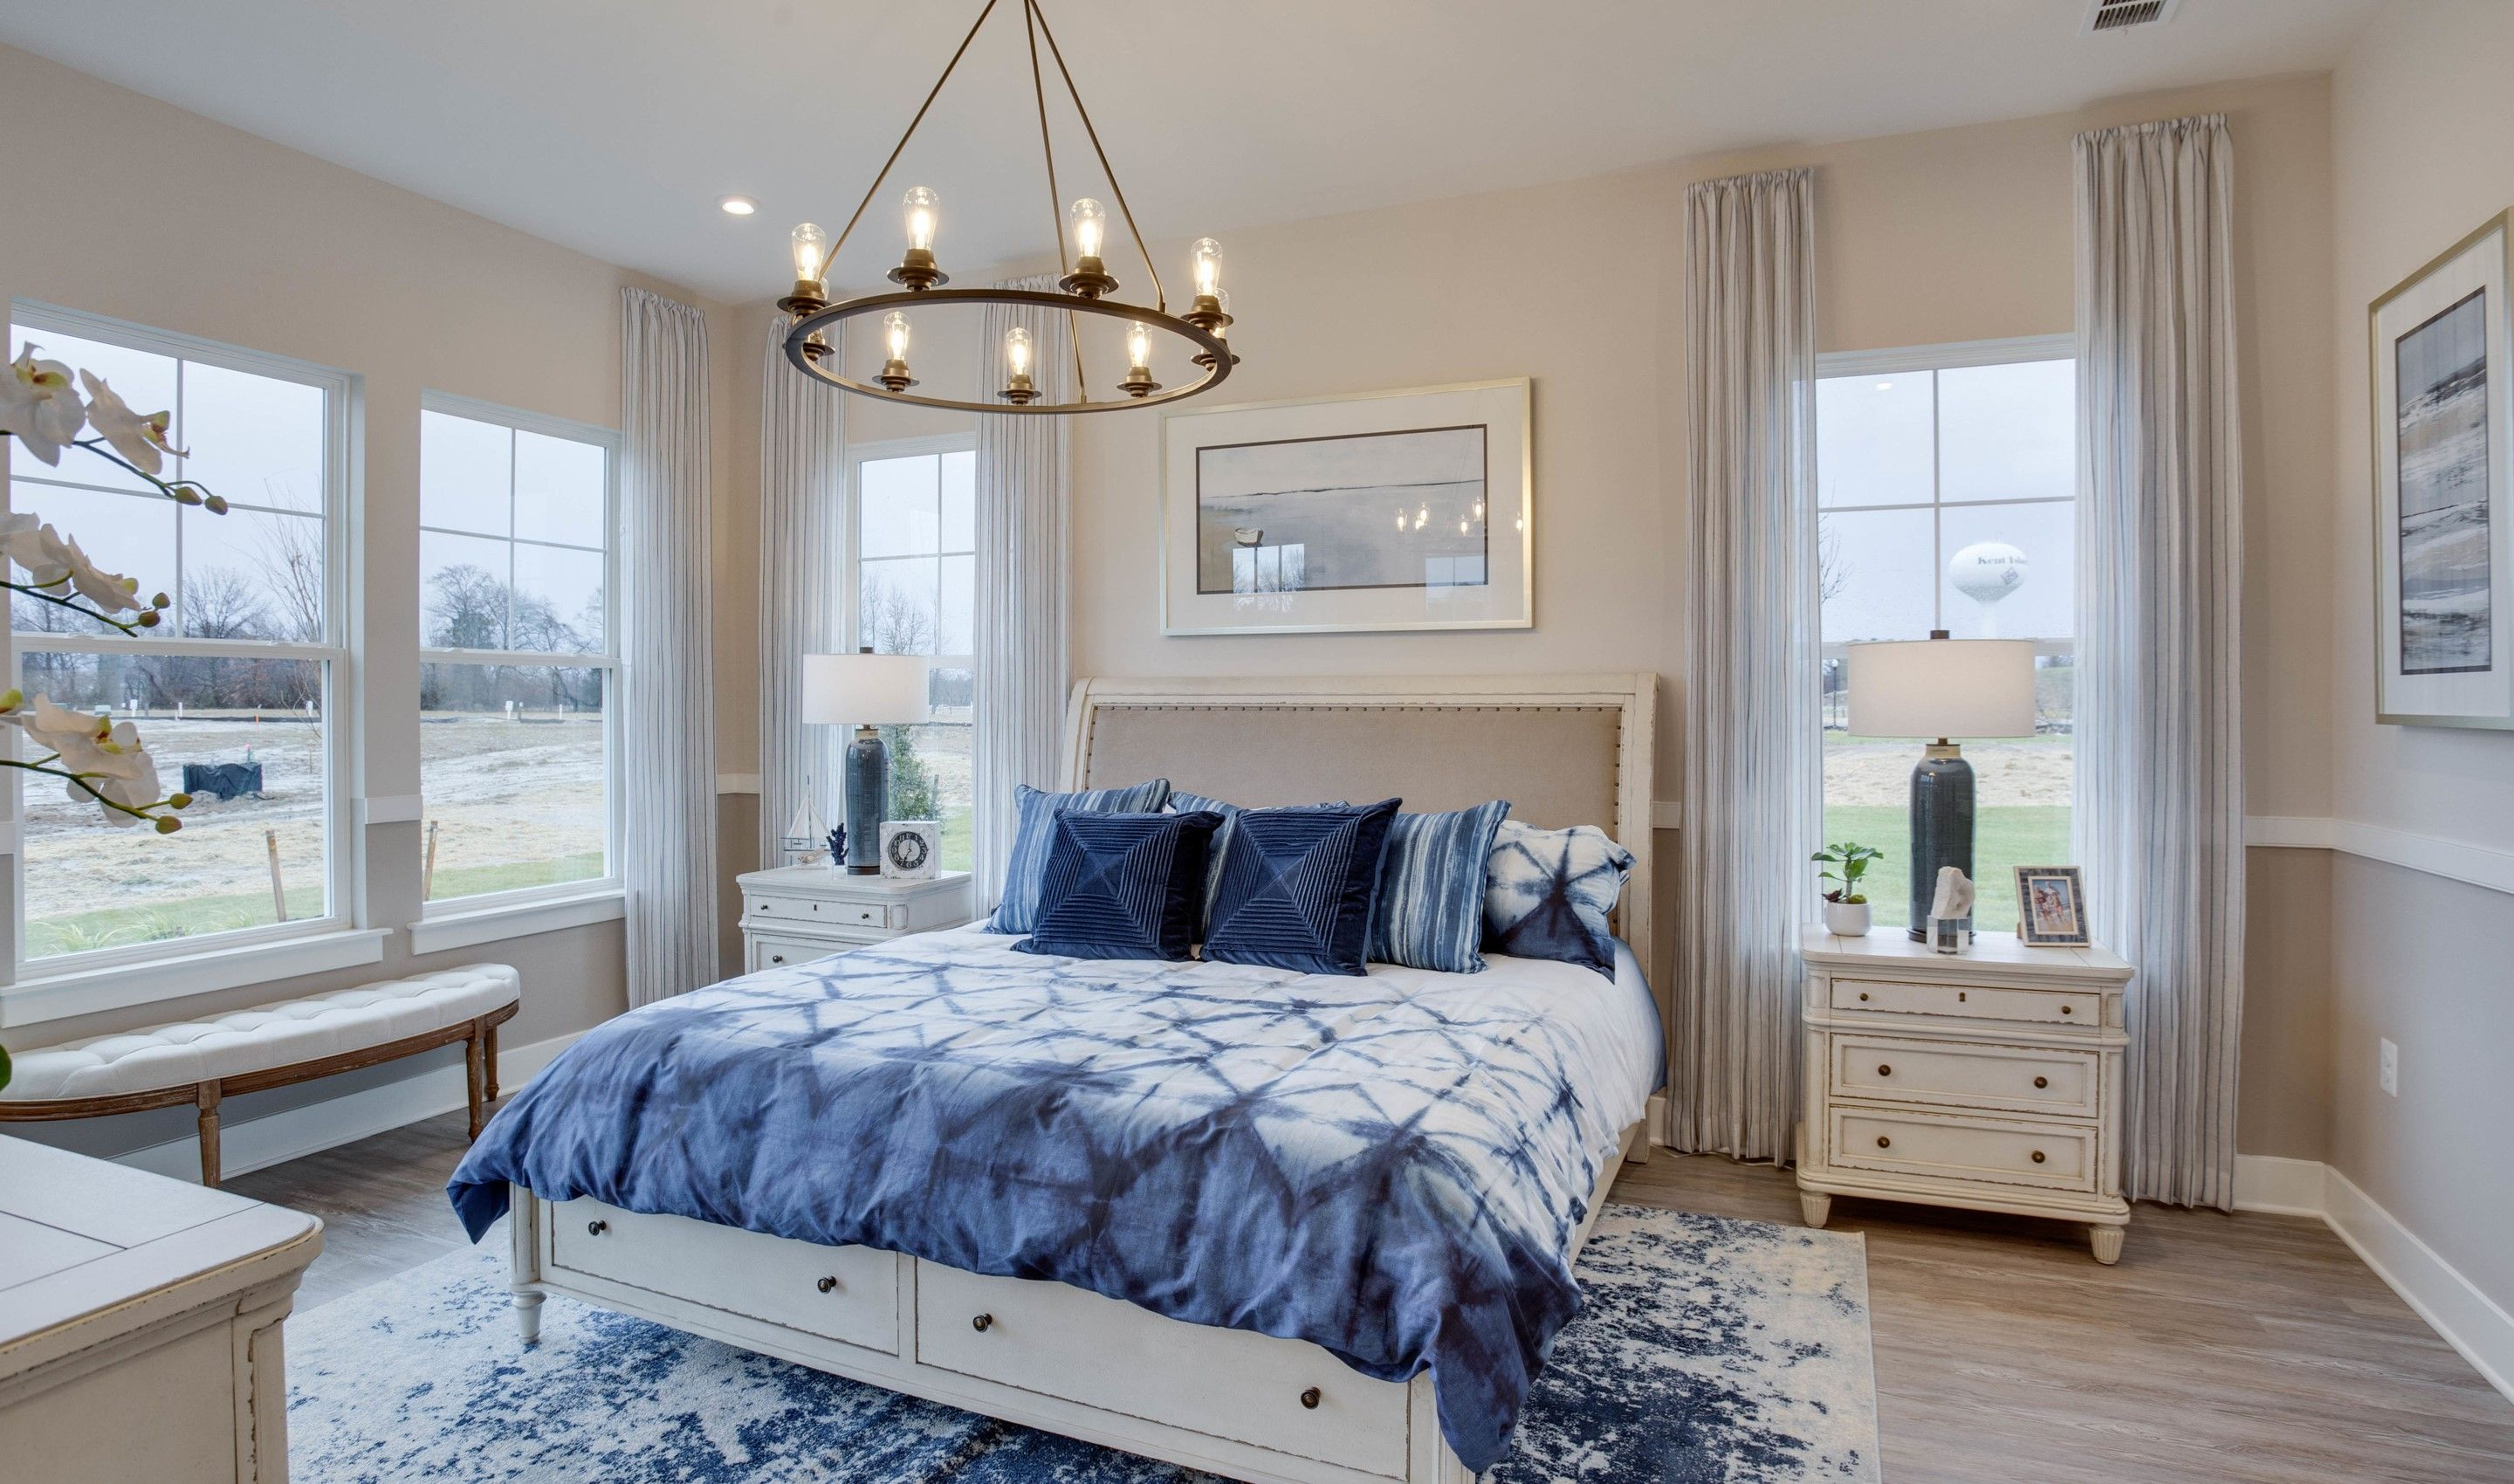 Bedroom featured in the Santorini By K. Hovnanian's® Four Seasons in Eastern Shore, MD